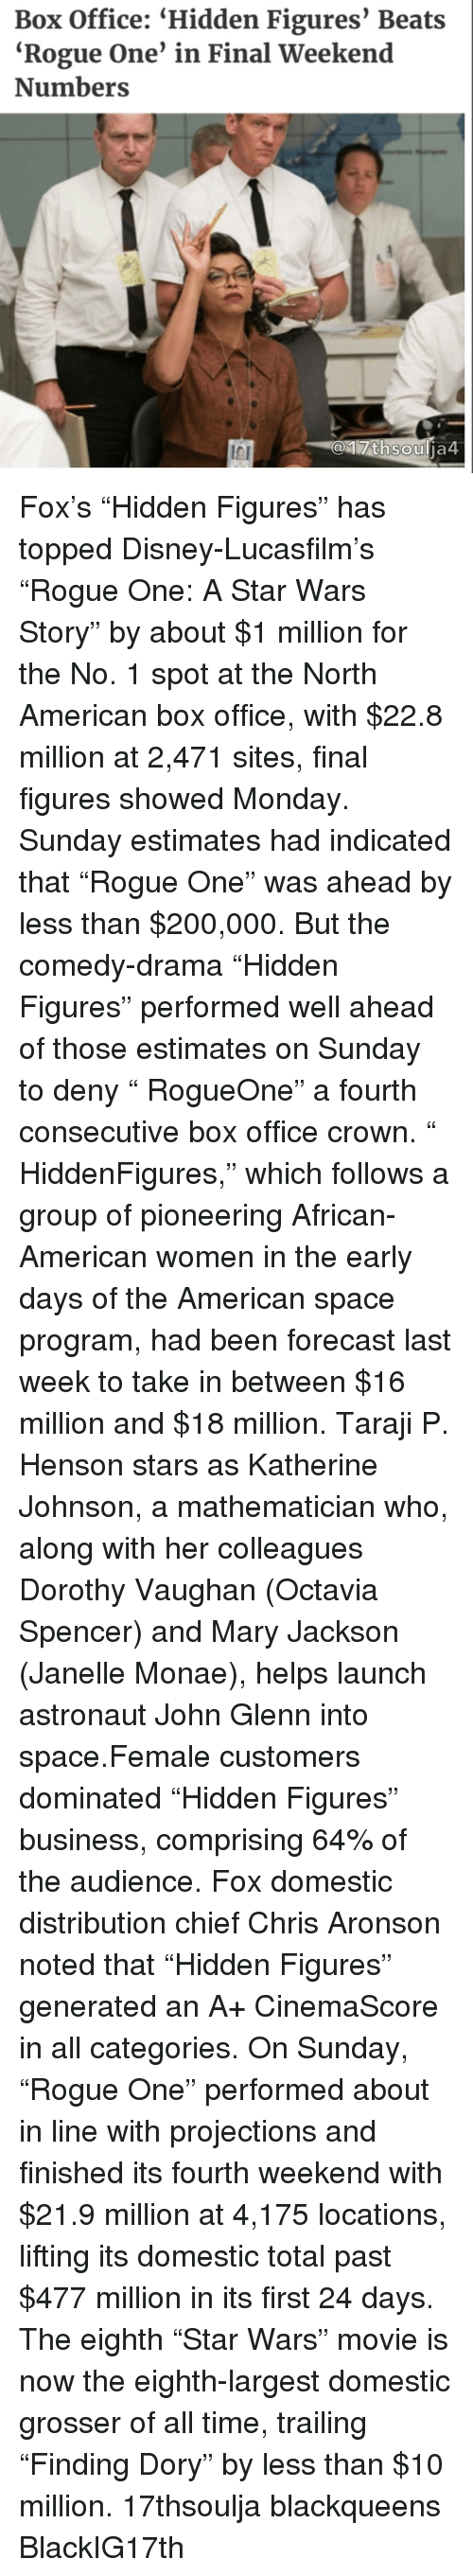 """Memes, Taraji P. Henson, and Janelle Monae: Box Office: """"Hidden Figures' Beats  """"Rogue One' in Final Weekend  Numbers  thsou  ja4 Fox's """"Hidden Figures"""" has topped Disney-Lucasfilm's """"Rogue One: A Star Wars Story"""" by about $1 million for the No. 1 spot at the North American box office, with $22.8 million at 2,471 sites, final figures showed Monday. Sunday estimates had indicated that """"Rogue One"""" was ahead by less than $200,000. But the comedy-drama """"Hidden Figures"""" performed well ahead of those estimates on Sunday to deny """" RogueOne"""" a fourth consecutive box office crown. """" HiddenFigures,"""" which follows a group of pioneering African-American women in the early days of the American space program, had been forecast last week to take in between $16 million and $18 million. Taraji P. Henson stars as Katherine Johnson, a mathematician who, along with her colleagues Dorothy Vaughan (Octavia Spencer) and Mary Jackson (Janelle Monae), helps launch astronaut John Glenn into space.Female customers dominated """"Hidden Figures"""" business, comprising 64% of the audience. Fox domestic distribution chief Chris Aronson noted that """"Hidden Figures"""" generated an A+ CinemaScore in all categories. On Sunday, """"Rogue One"""" performed about in line with projections and finished its fourth weekend with $21.9 million at 4,175 locations, lifting its domestic total past $477 million in its first 24 days. The eighth """"Star Wars"""" movie is now the eighth-largest domestic grosser of all time, trailing """"Finding Dory"""" by less than $10 million. 17thsoulja blackqueens BlackIG17th"""